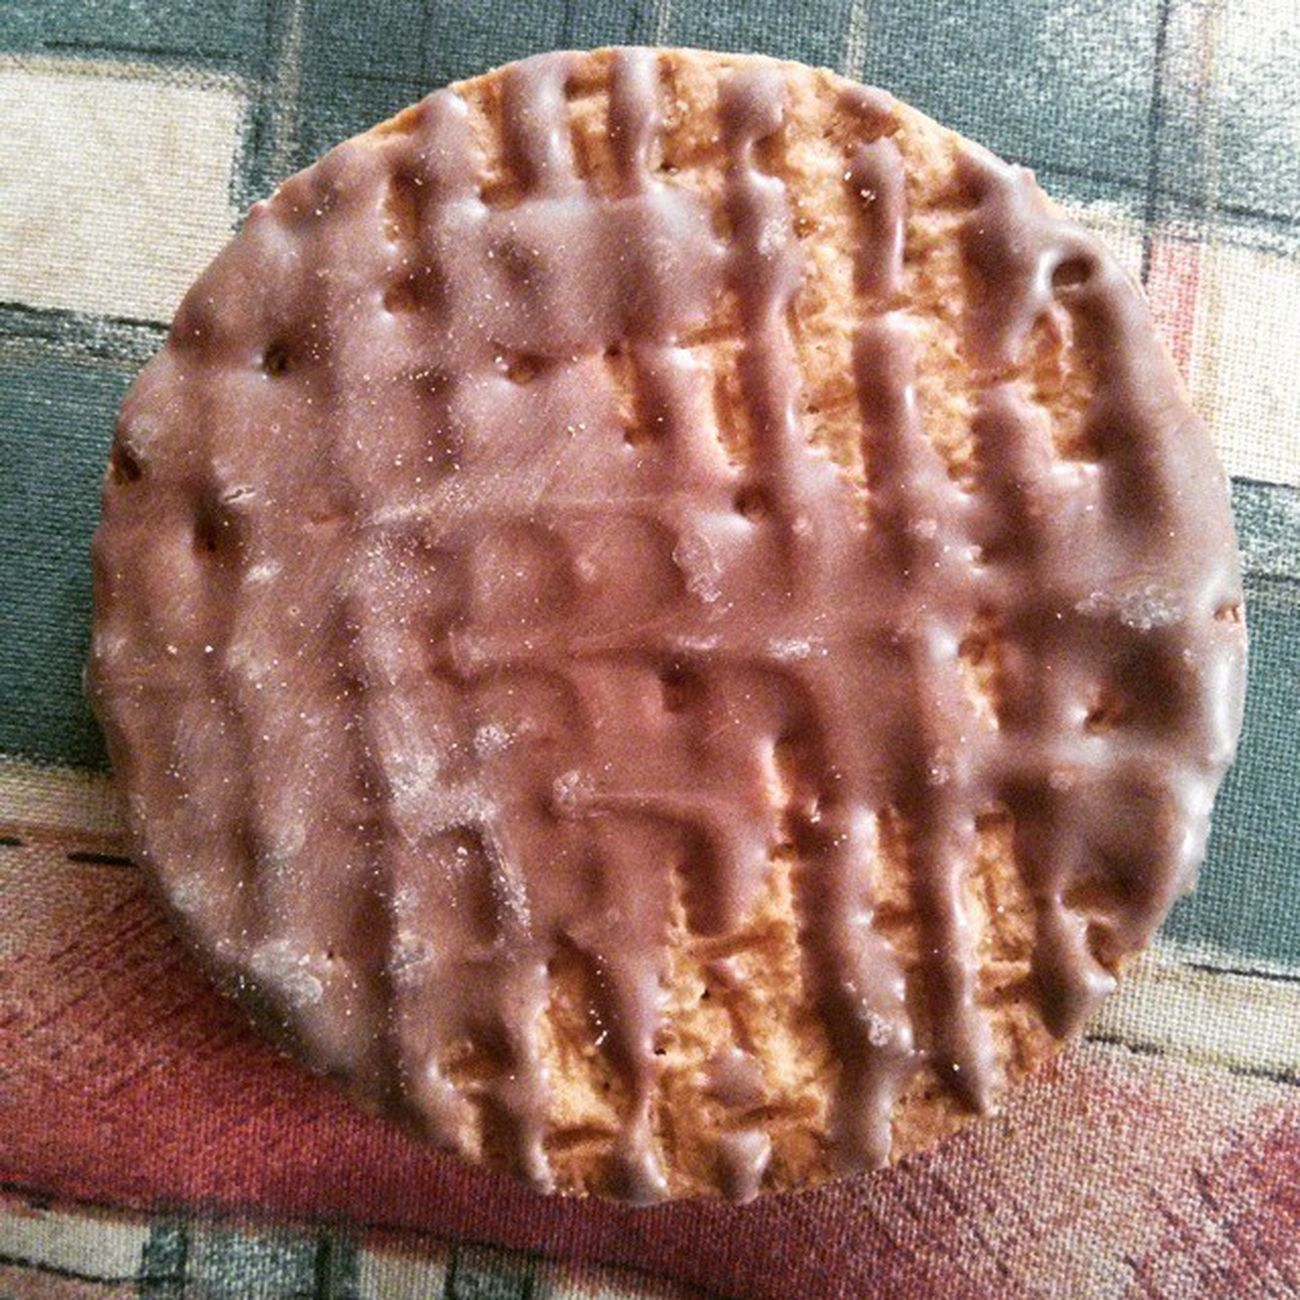 Unacceptable chocolate coverage. Mcvities